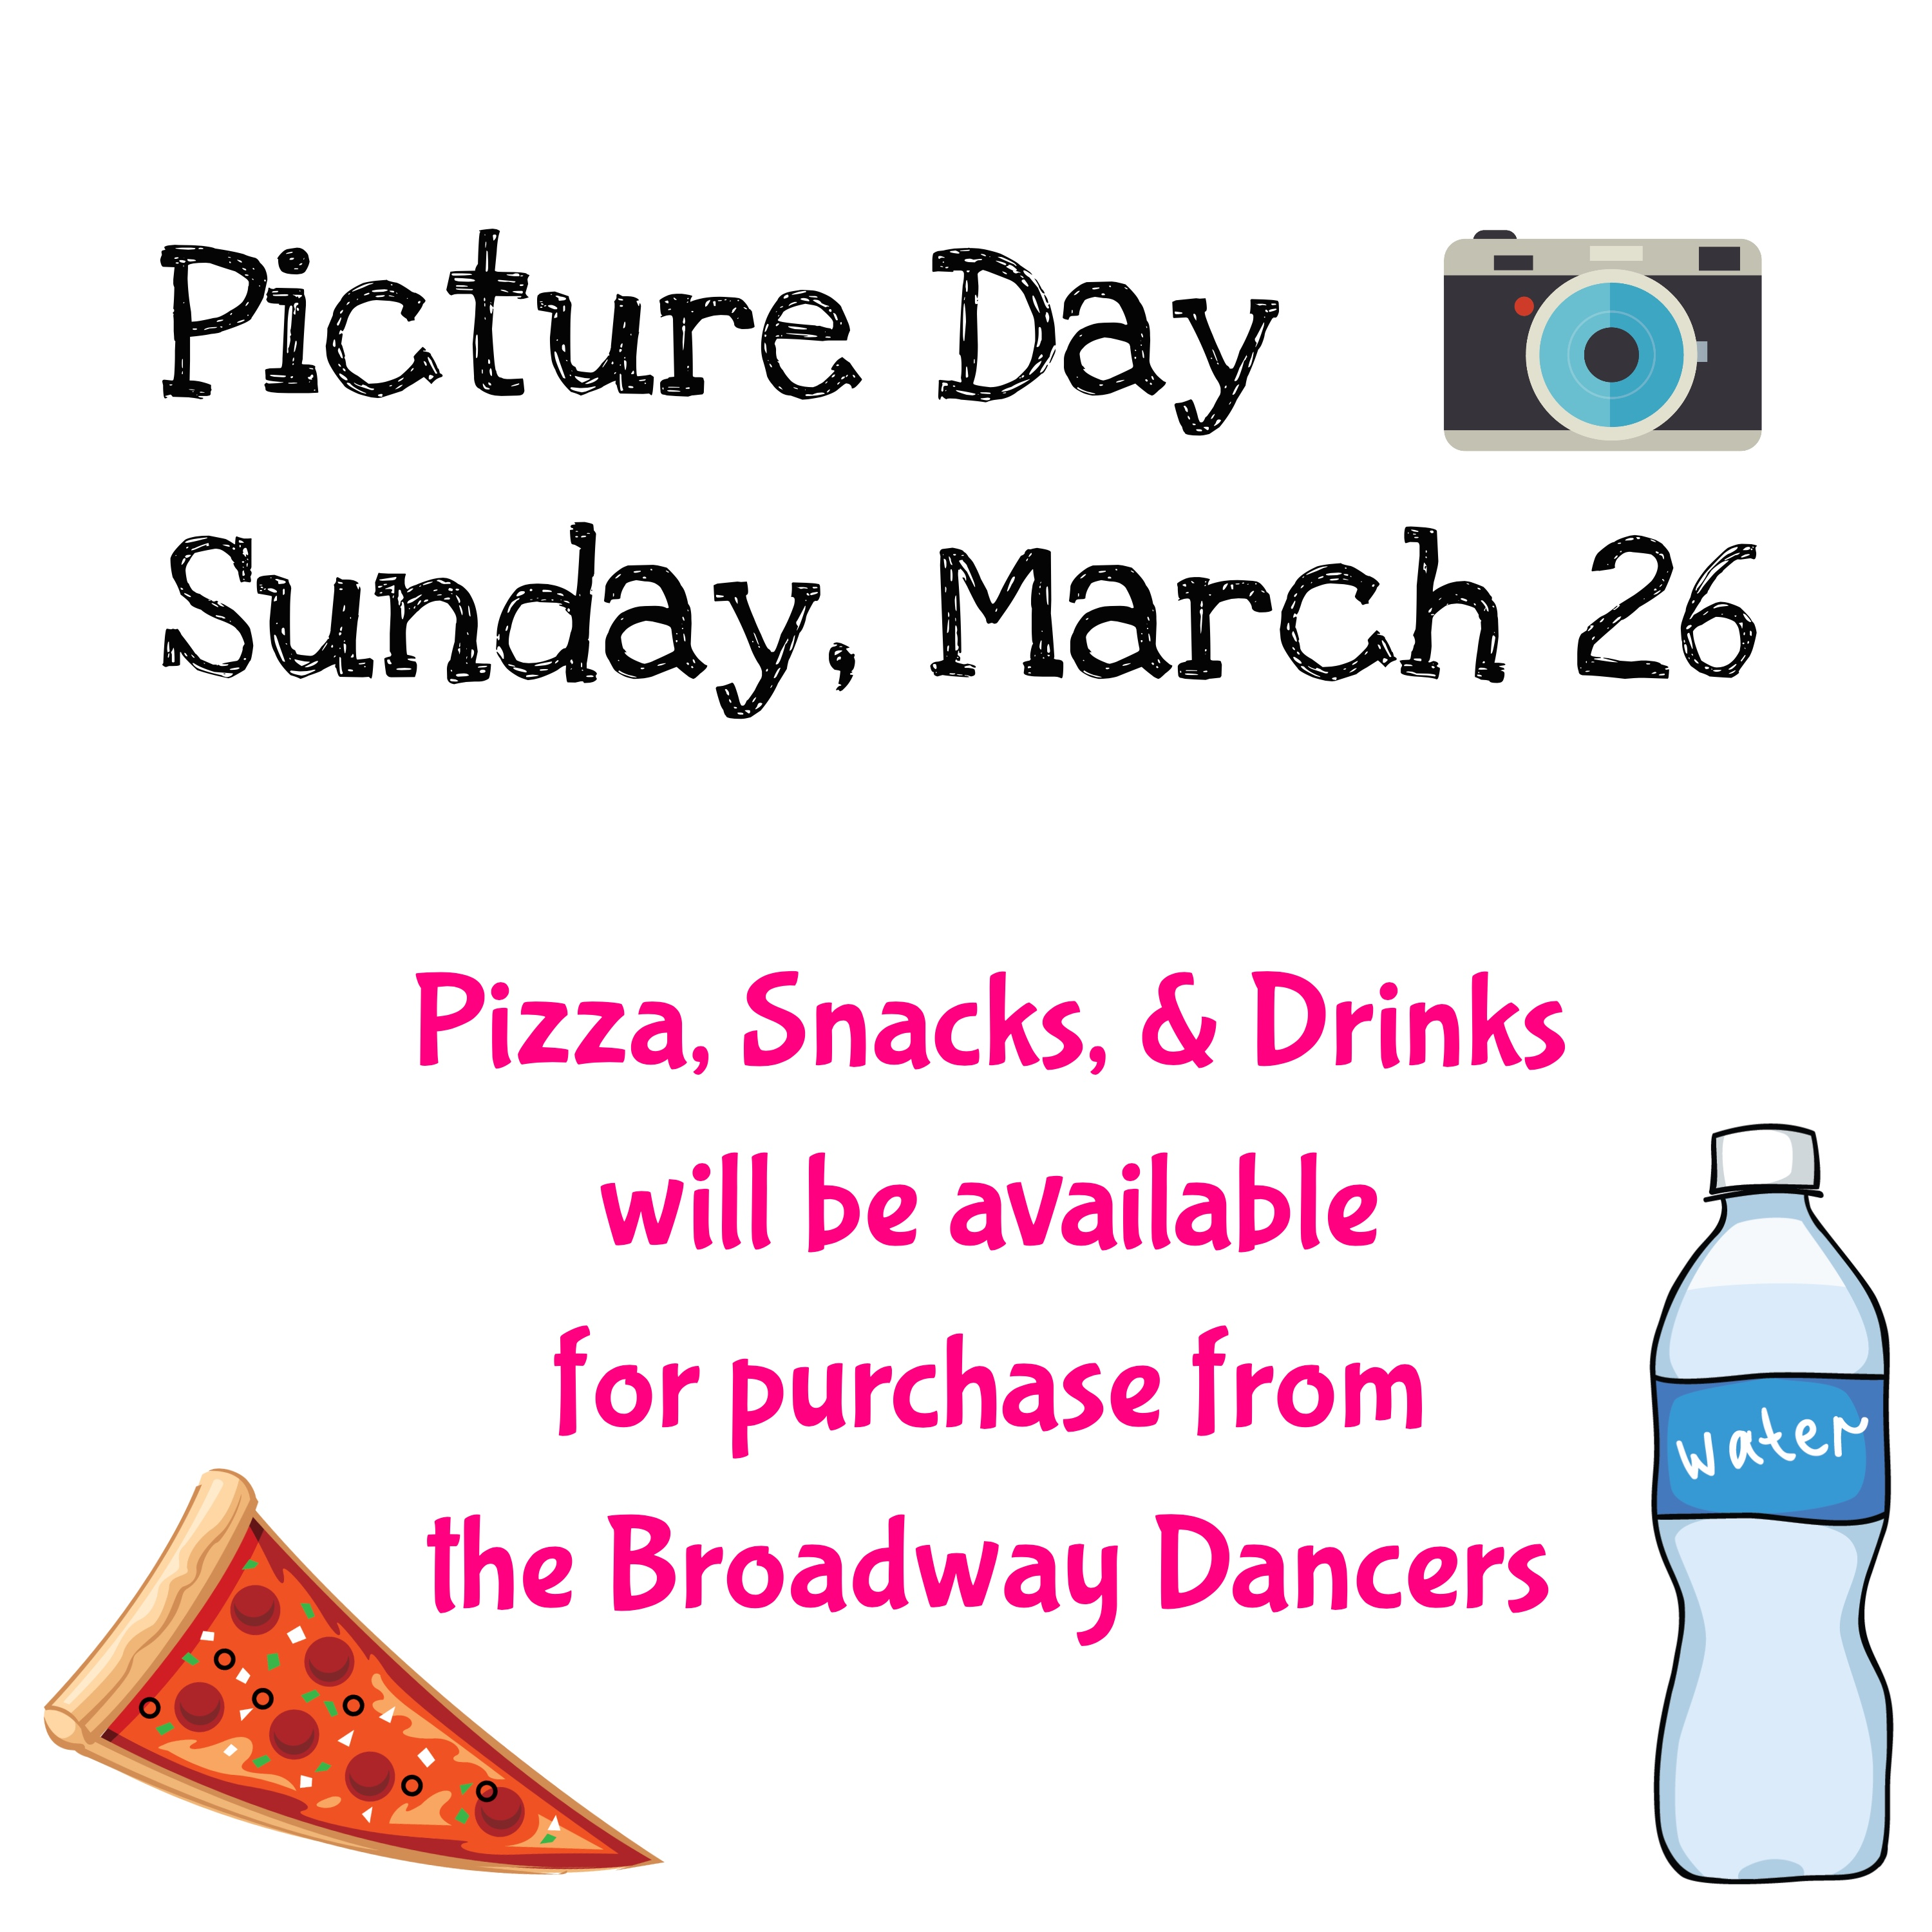 Picture Day - Sunday March 26